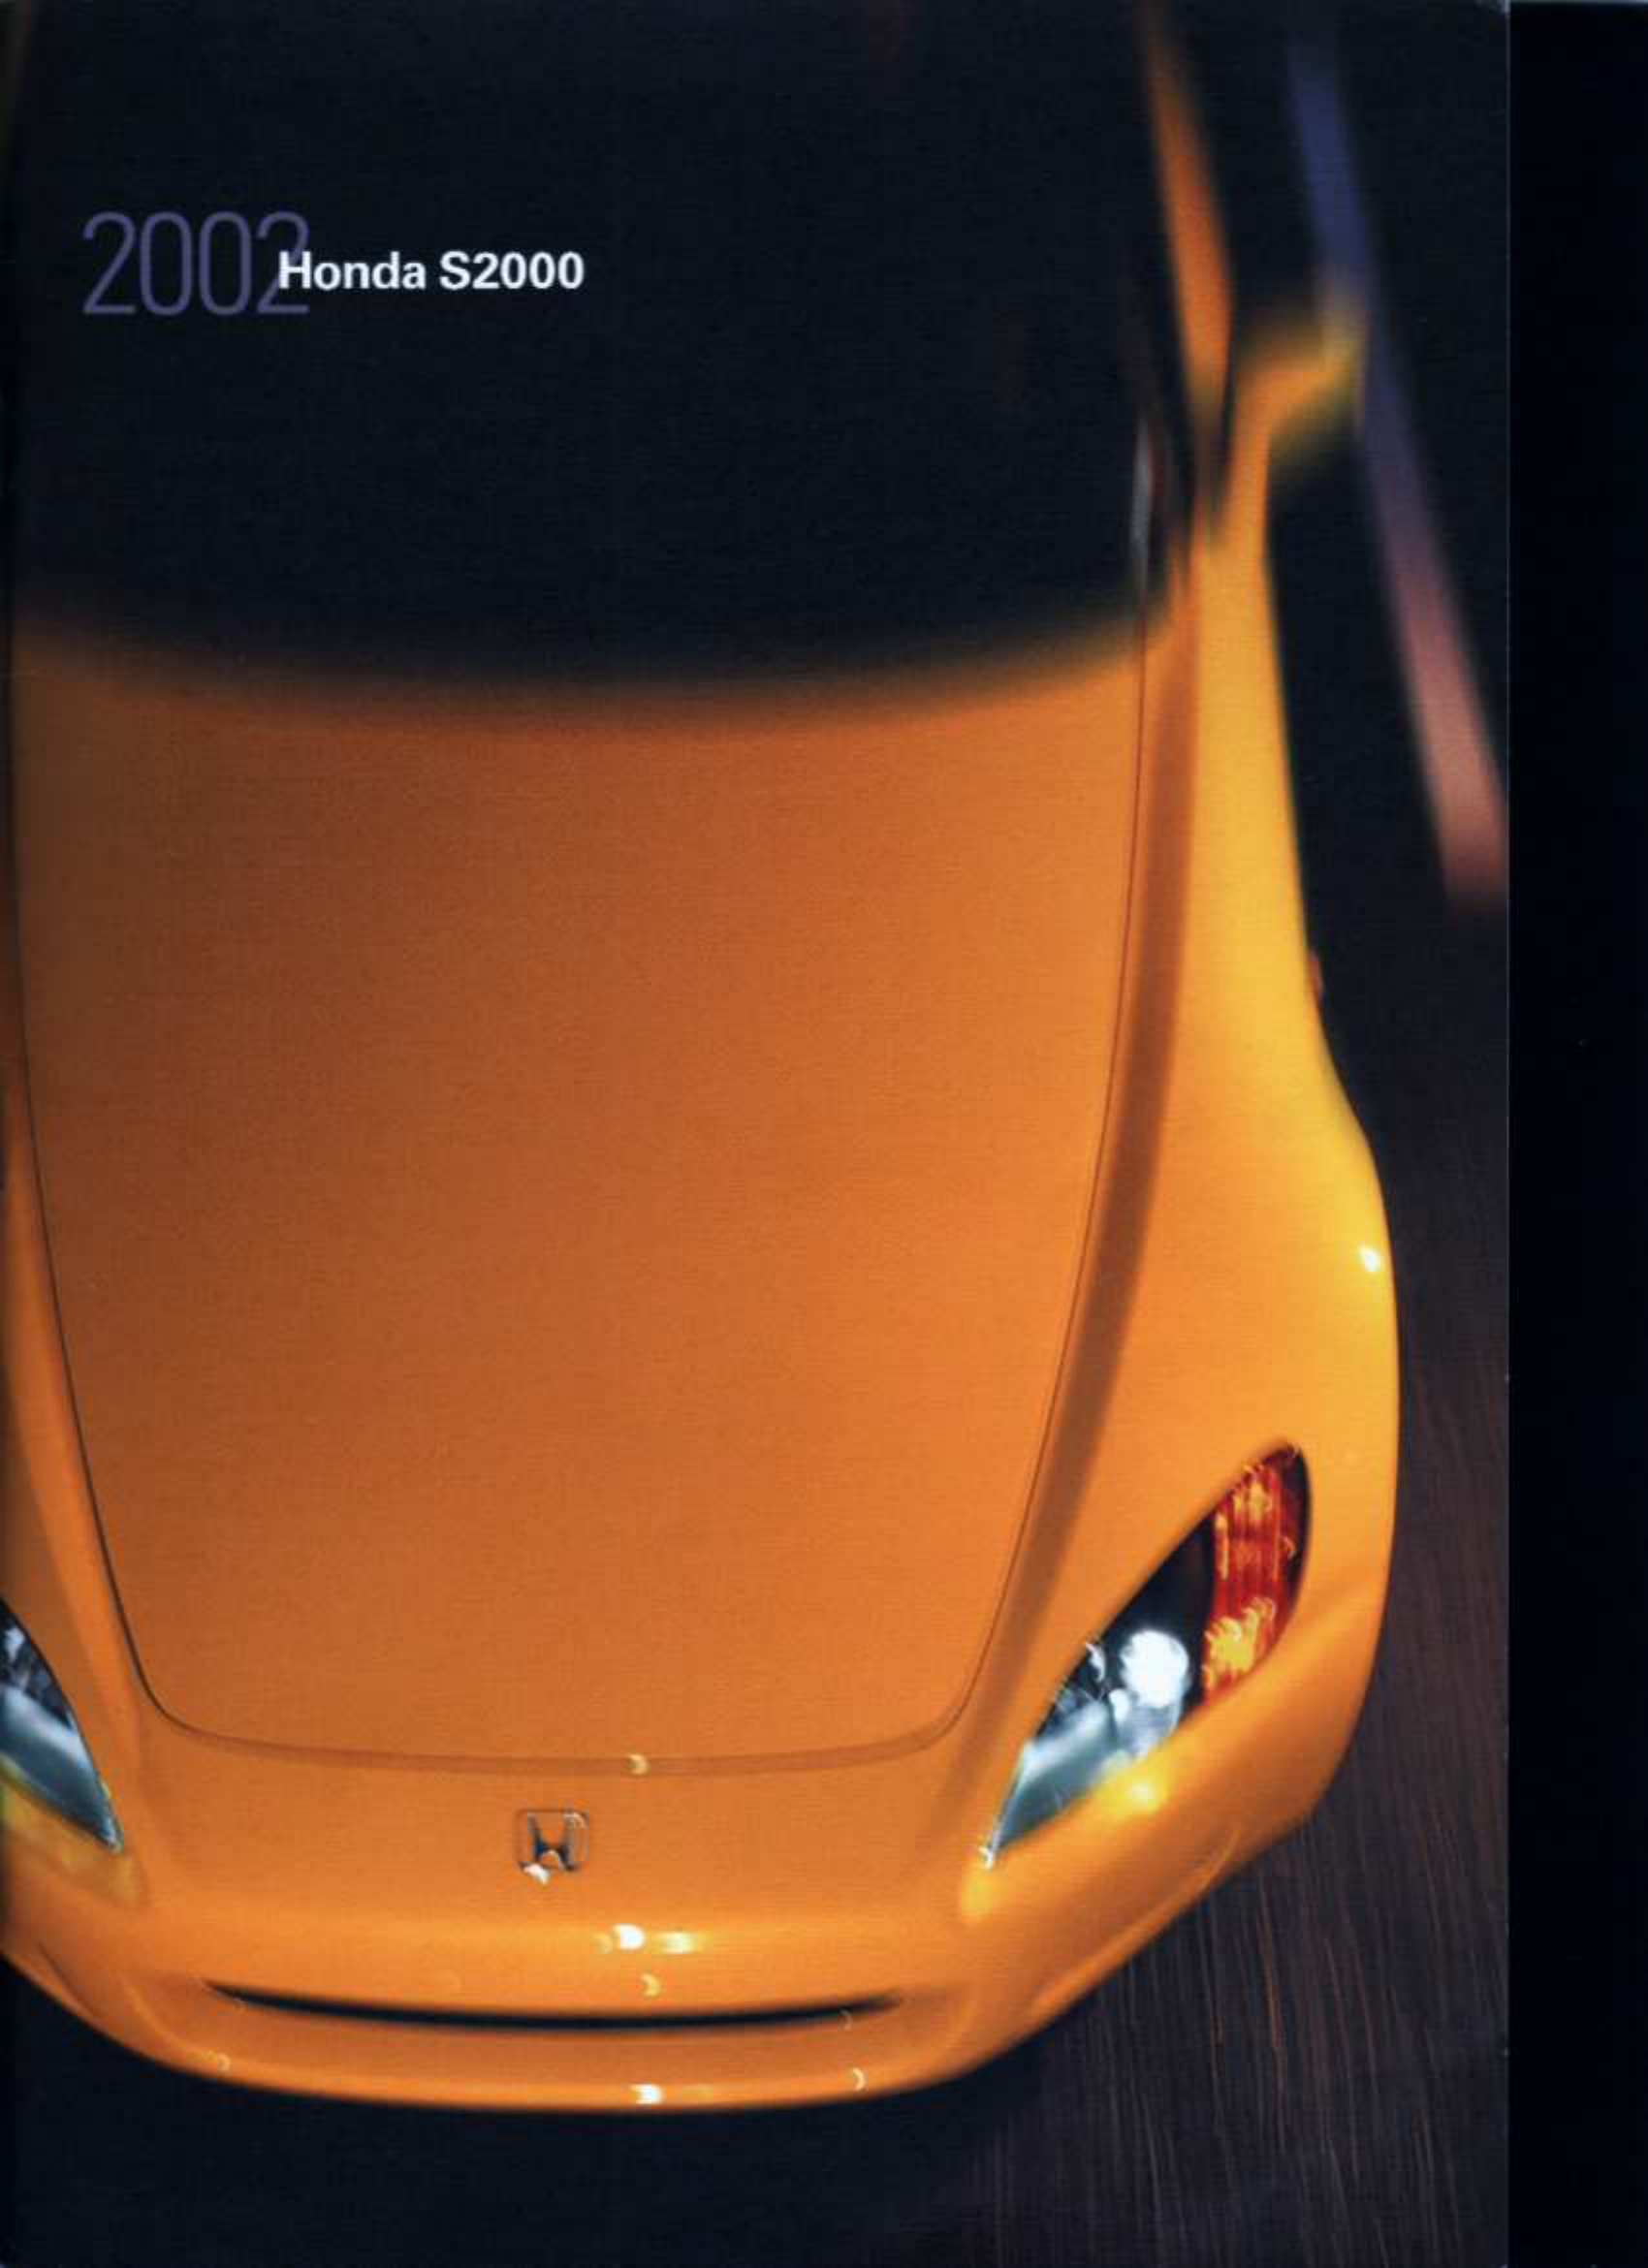 See our other Honda S2000 Manuals: